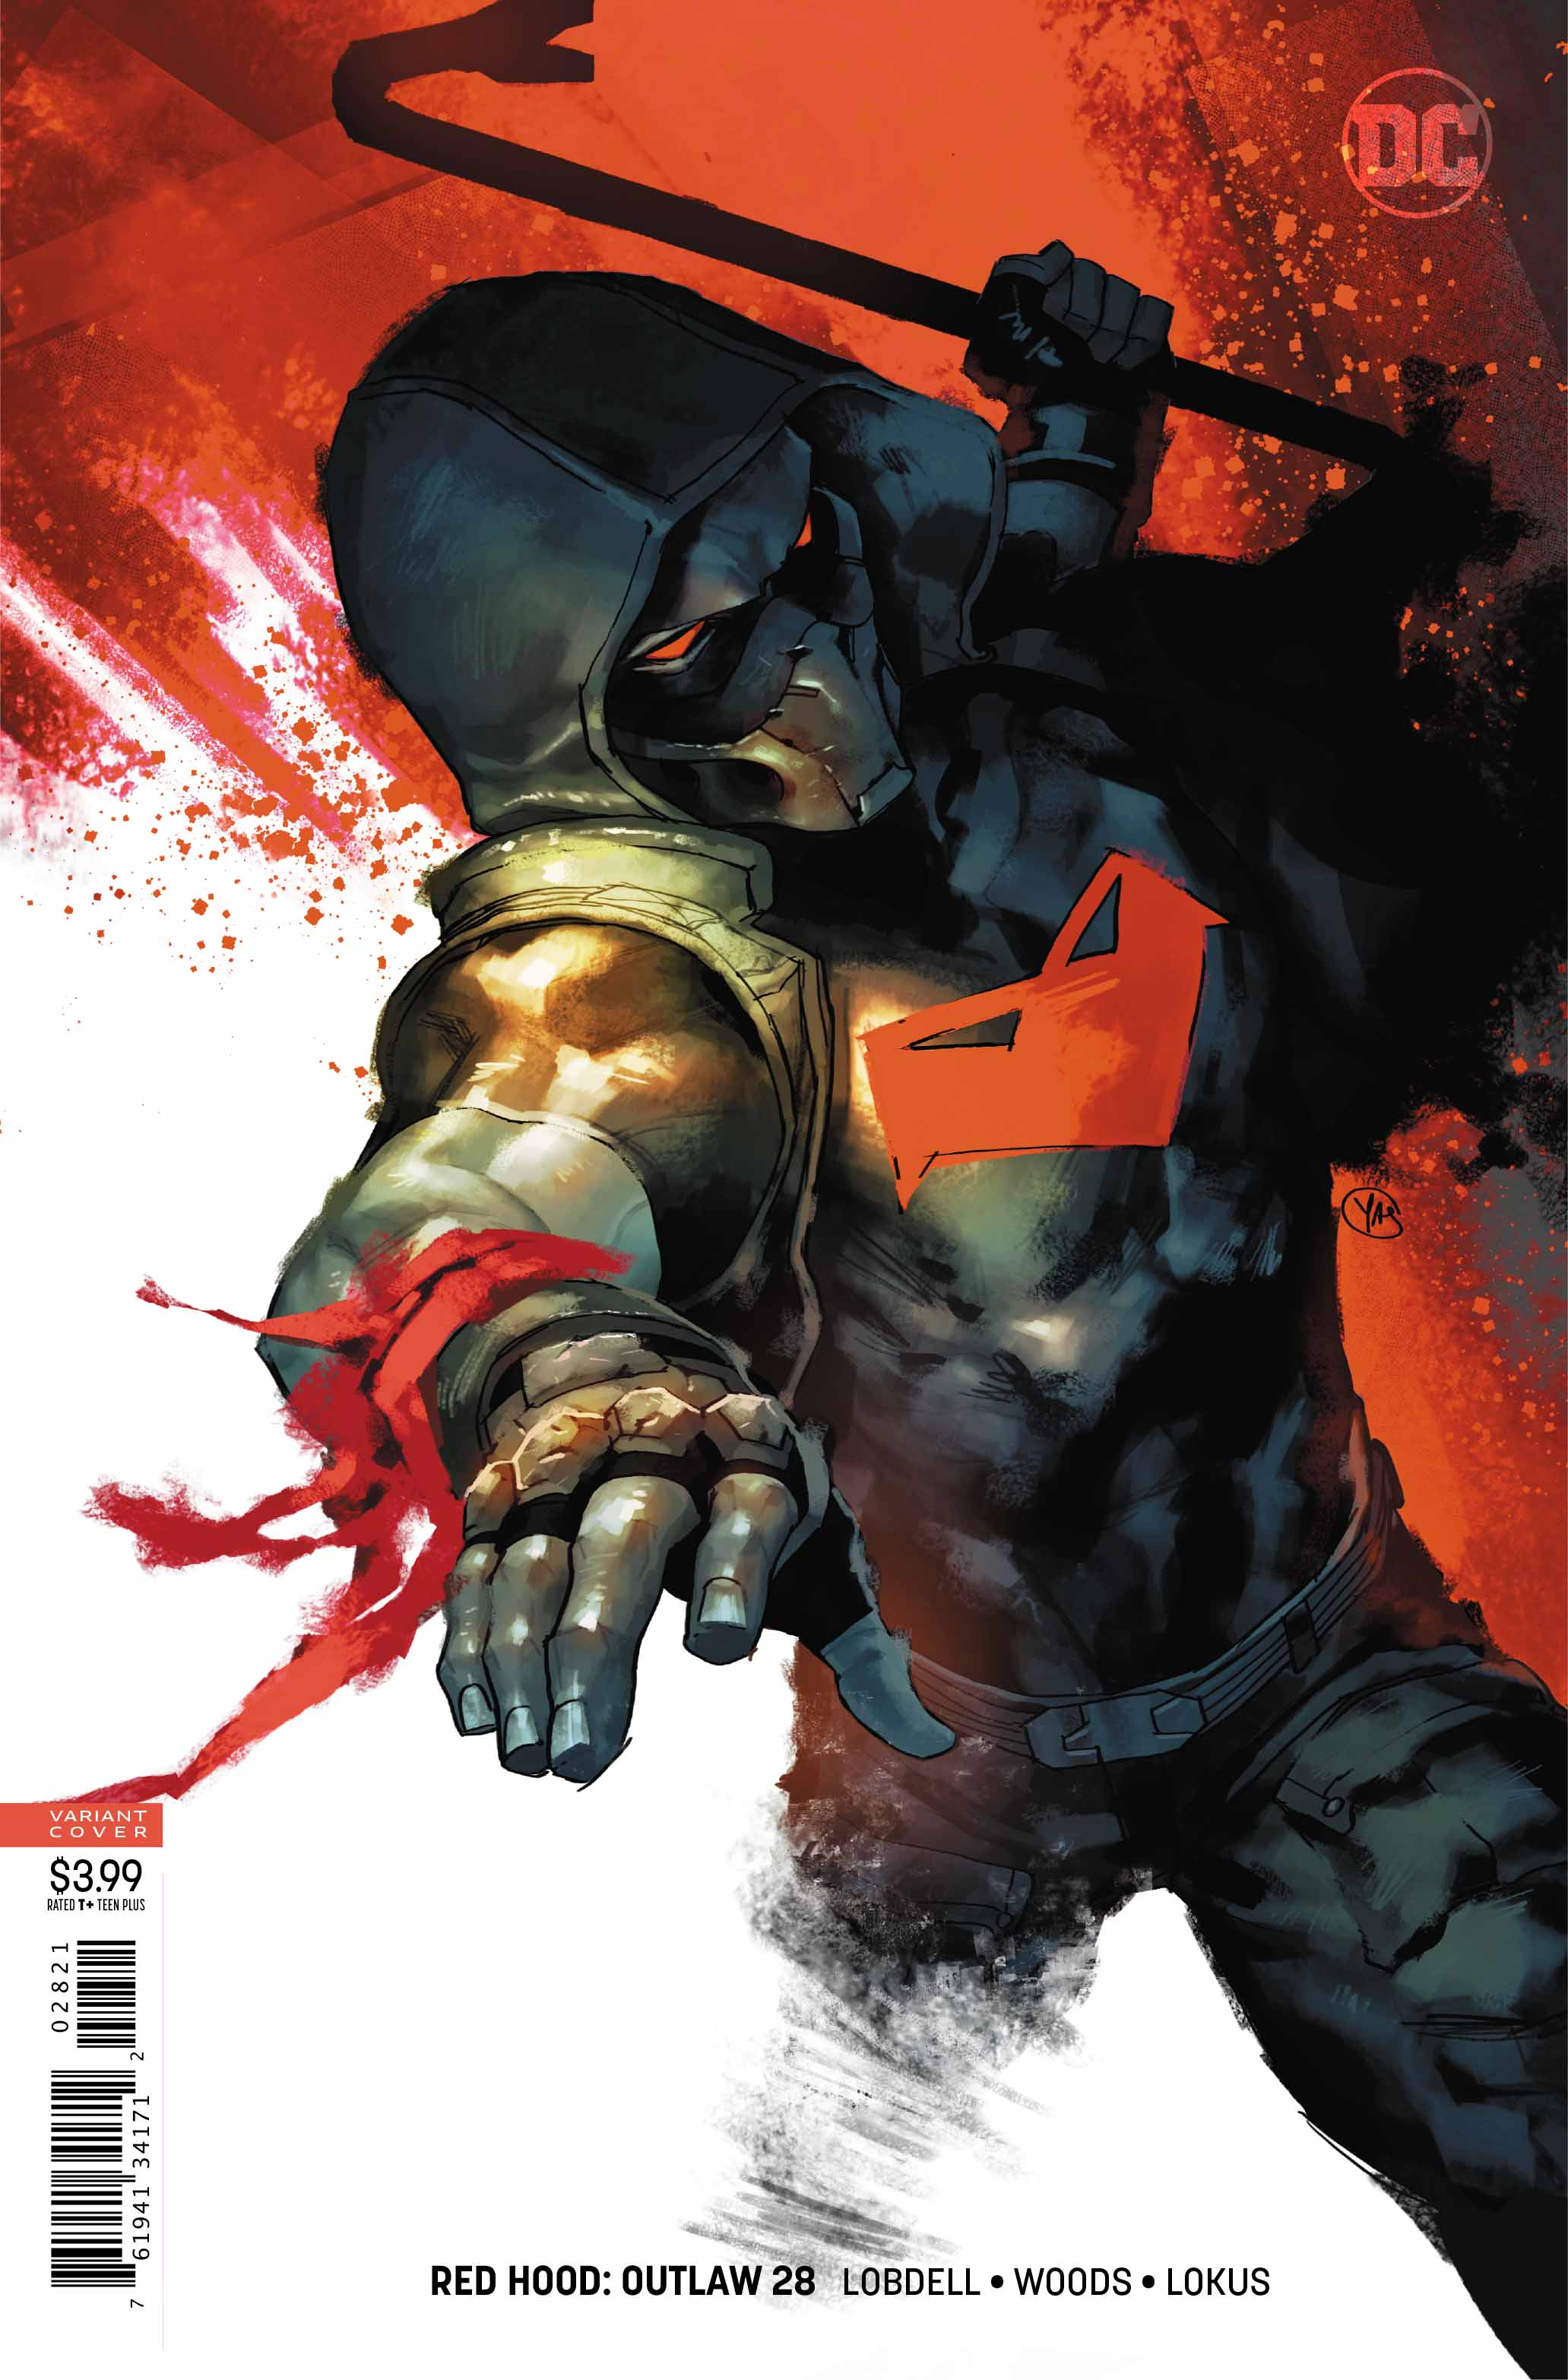 Red Hood: Outlaw #28 review: Action. Just lots of action. Why? Who knows.